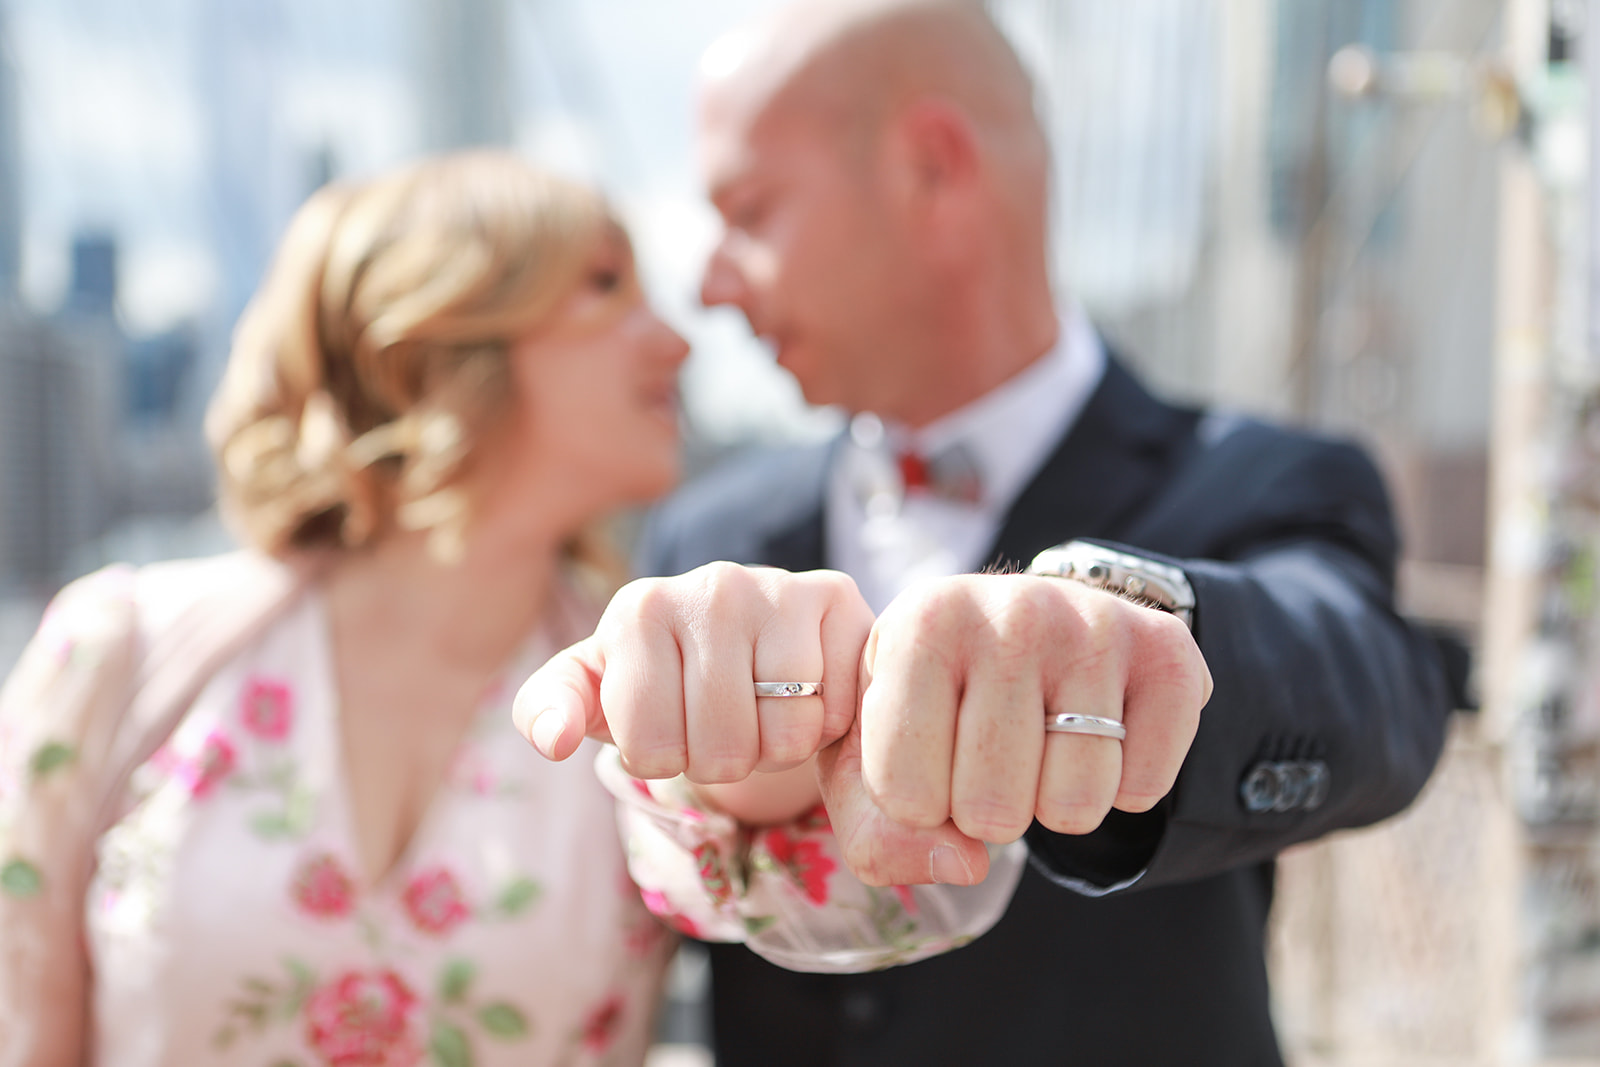 Couple posed for photo; holding out arms and showing fists with wedding rings on fingeres